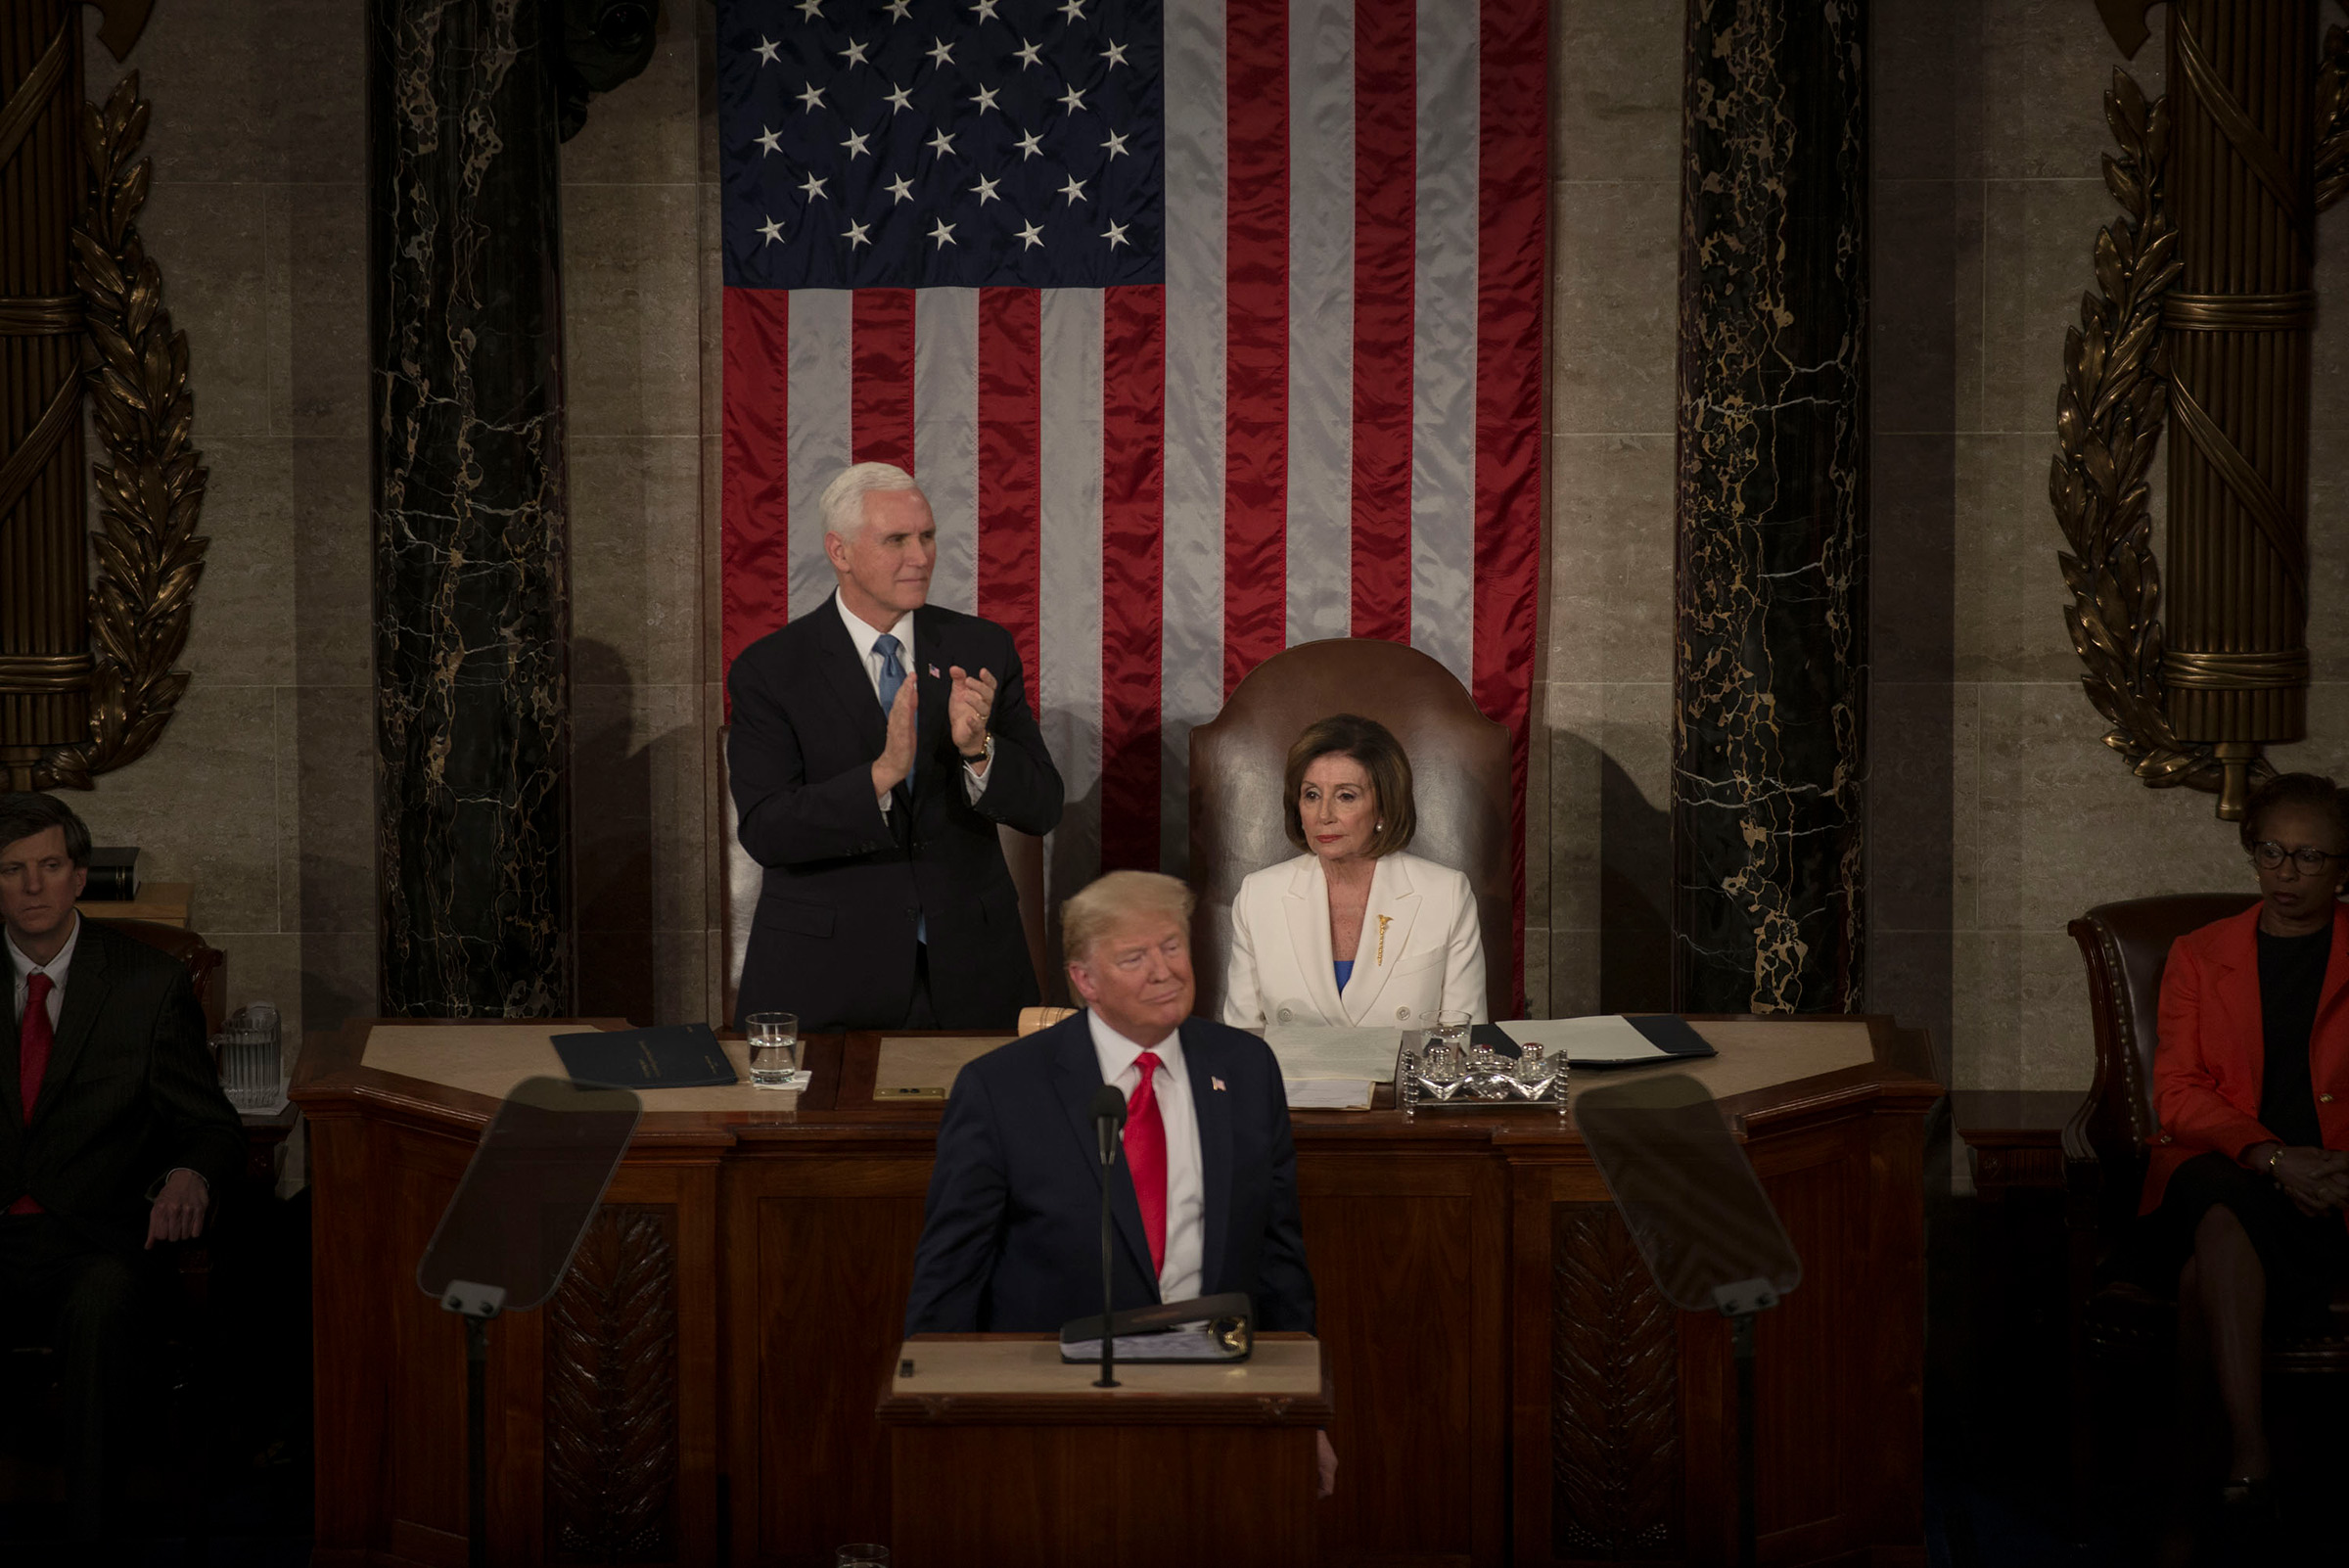 President Donald Trump delivers his State of the Union address on the House floor of the Capitol in Washington, D.C., Feb. 4, 2020.